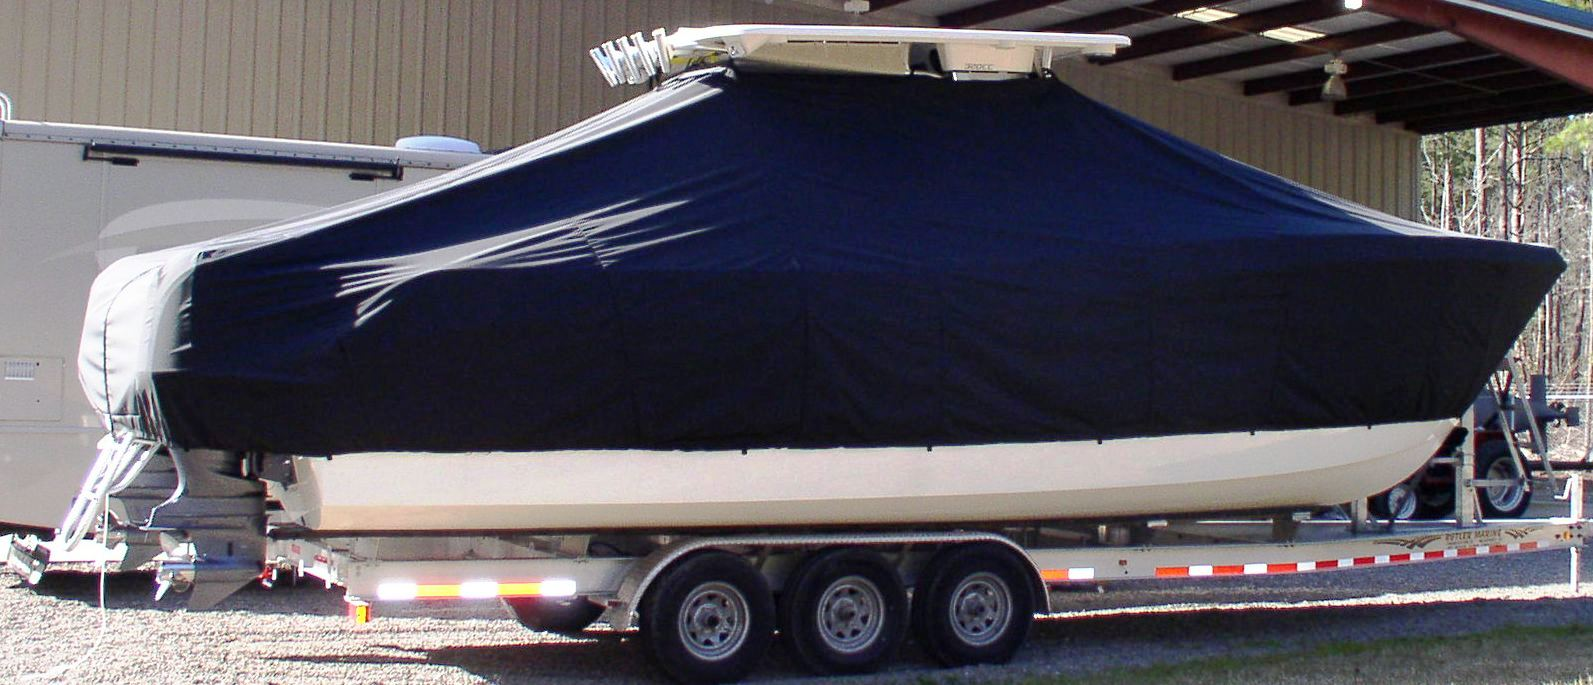 World Cat 320 DC, 20xx, TTopCovers™ T-Top boat cover, starboard side